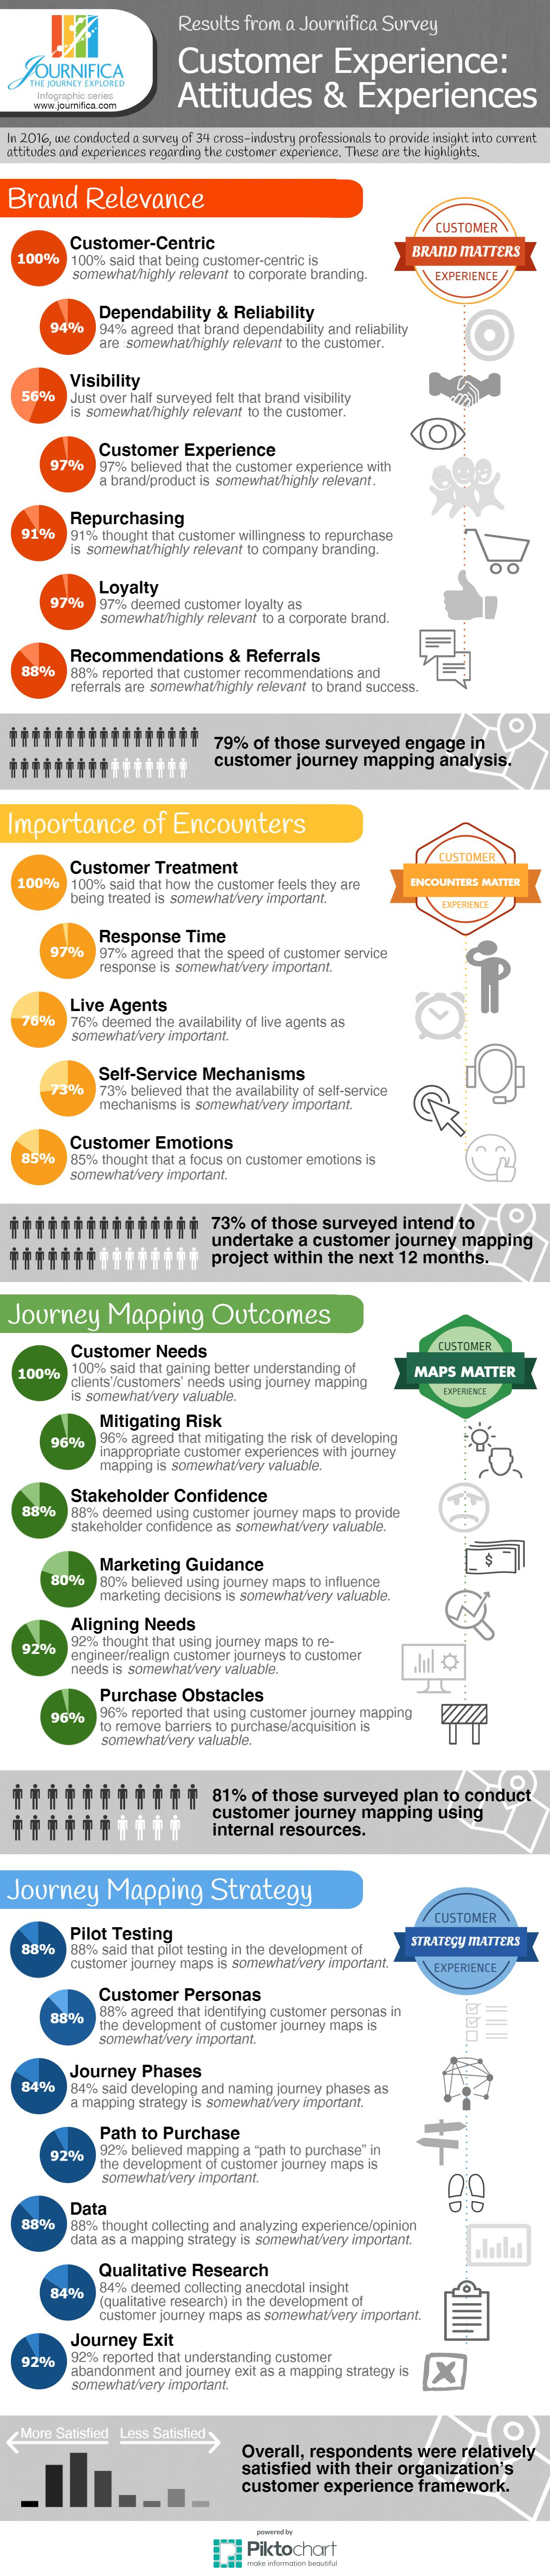 infographic on customer experience management